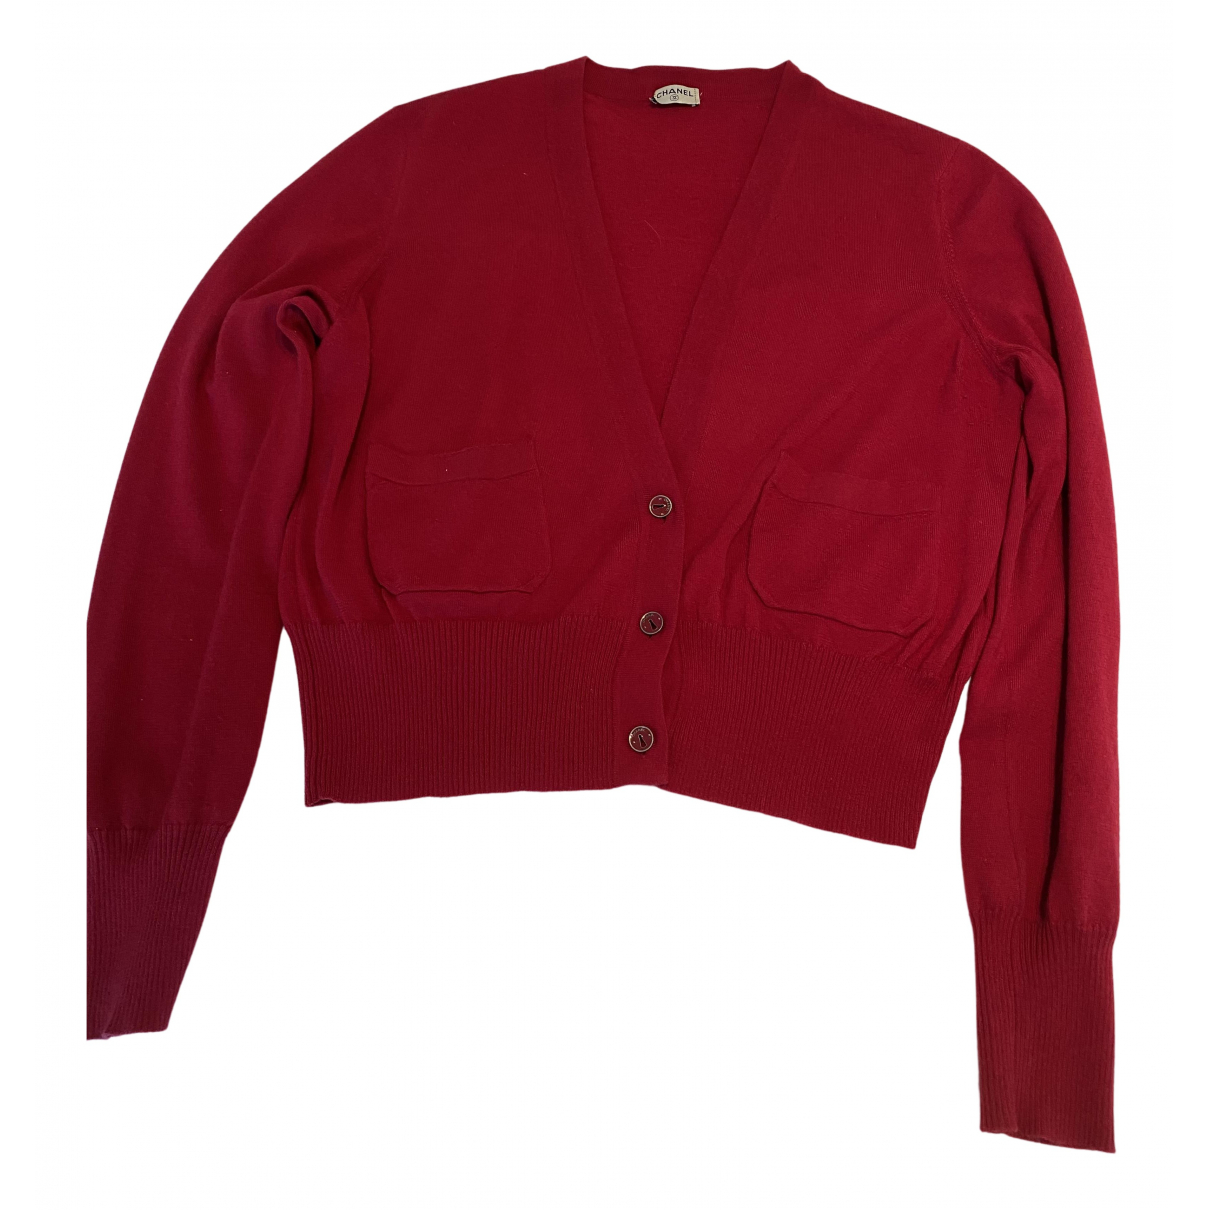 Chanel N Red Cashmere Knitwear for Women 40 FR